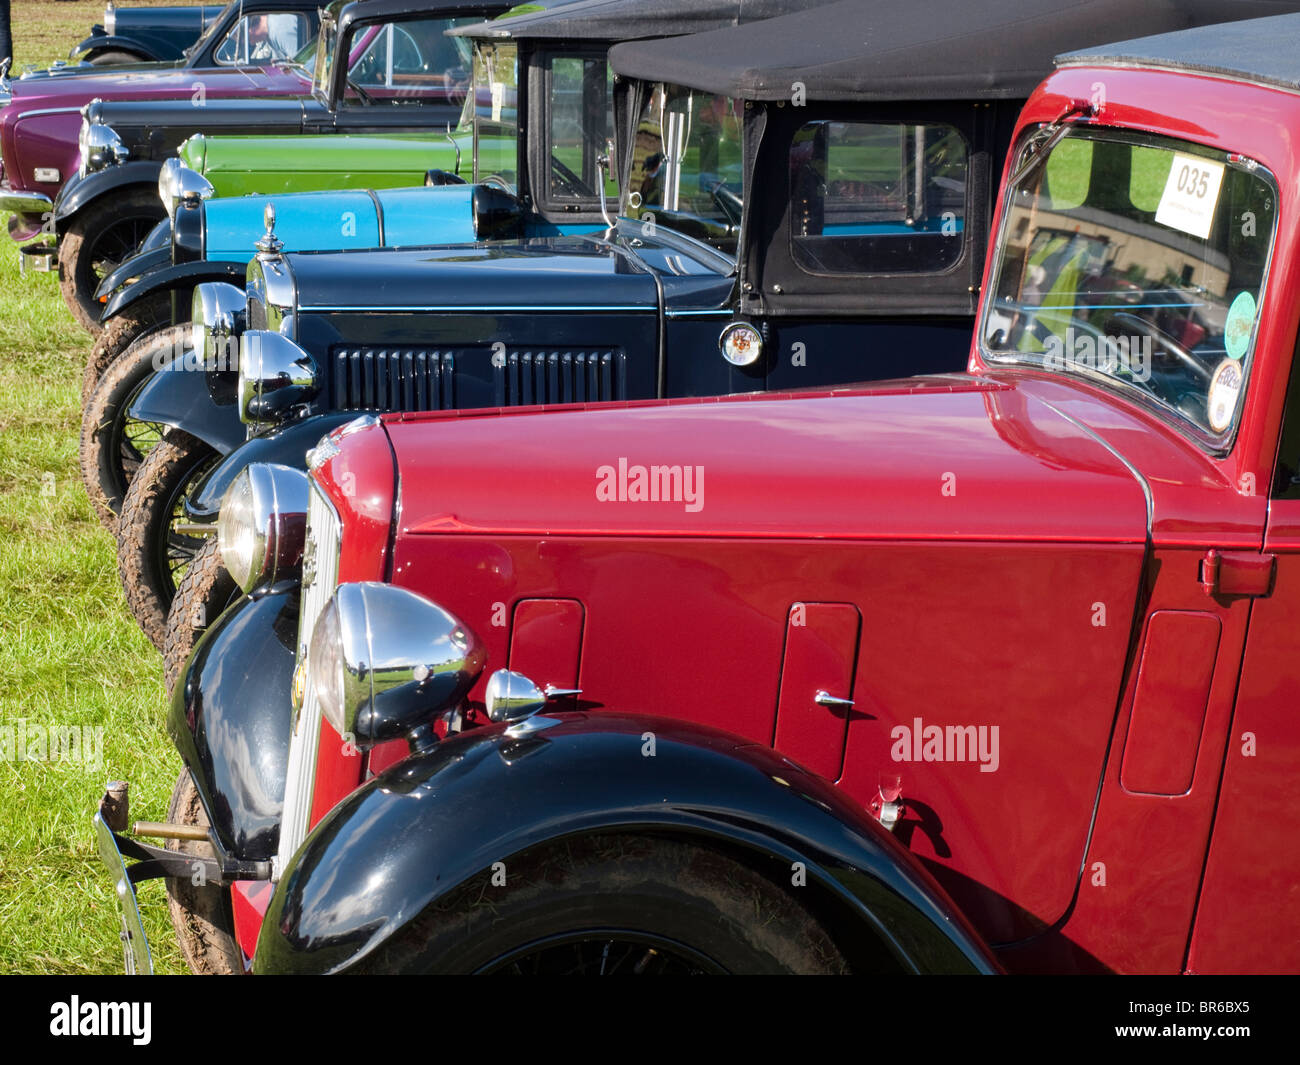 A row of vintage Austin 7 cars Stock Photo, Royalty Free Image ...